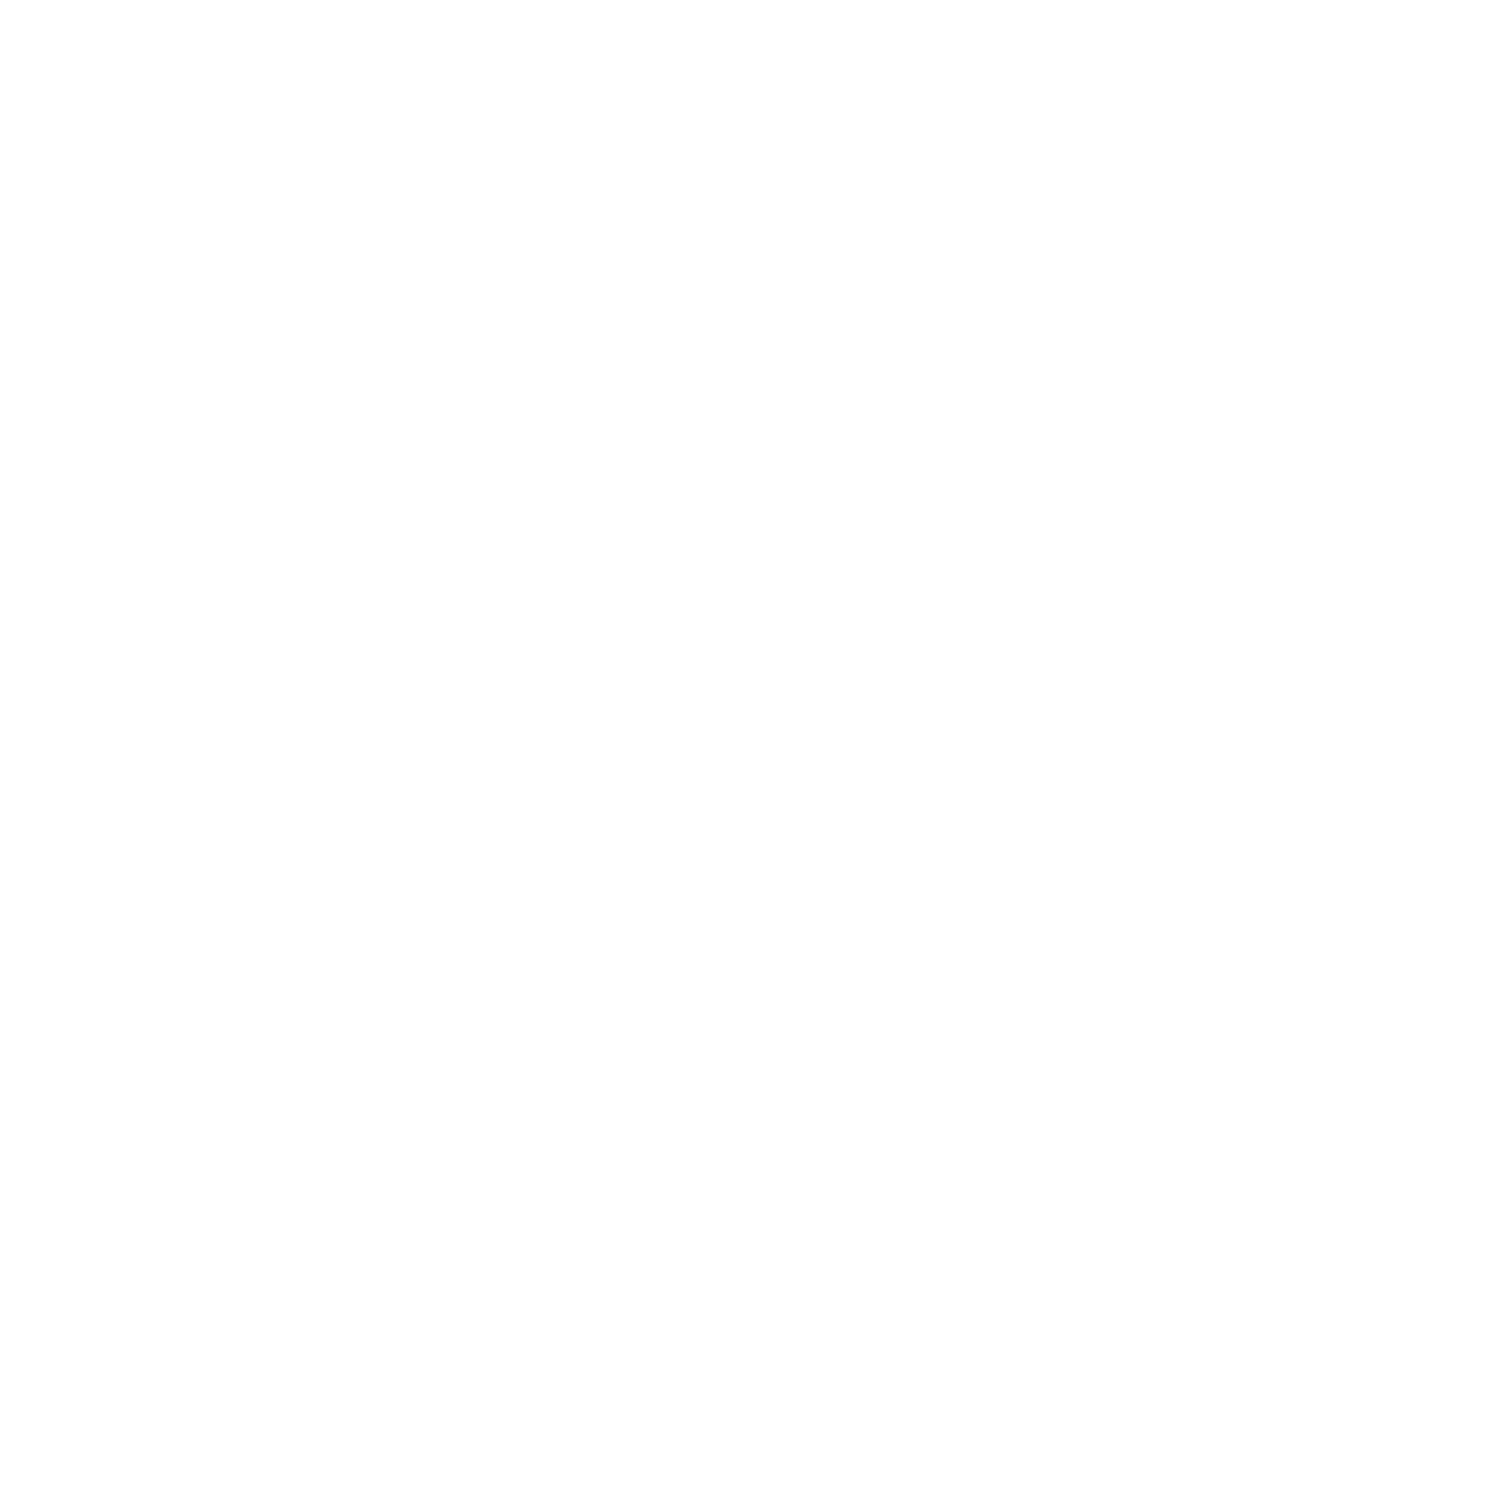 Gomez BBQ - Indianapolis Craft Barbecue